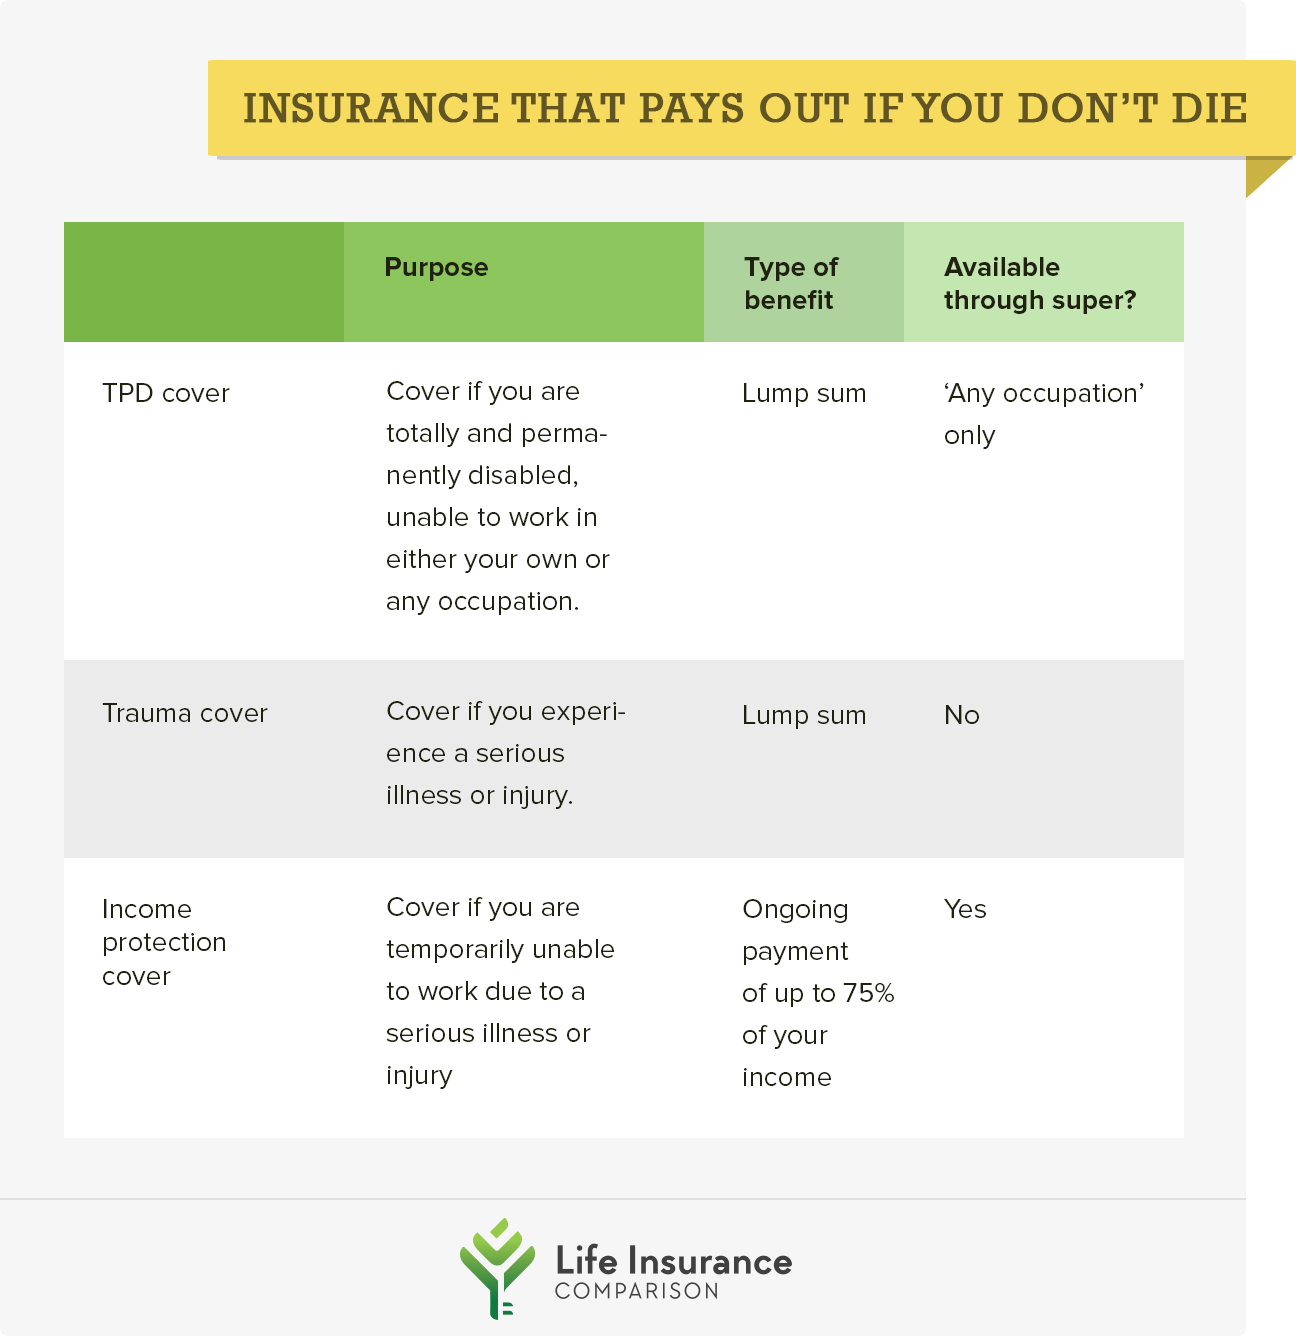 Types of life insurance that pay out if you don't die